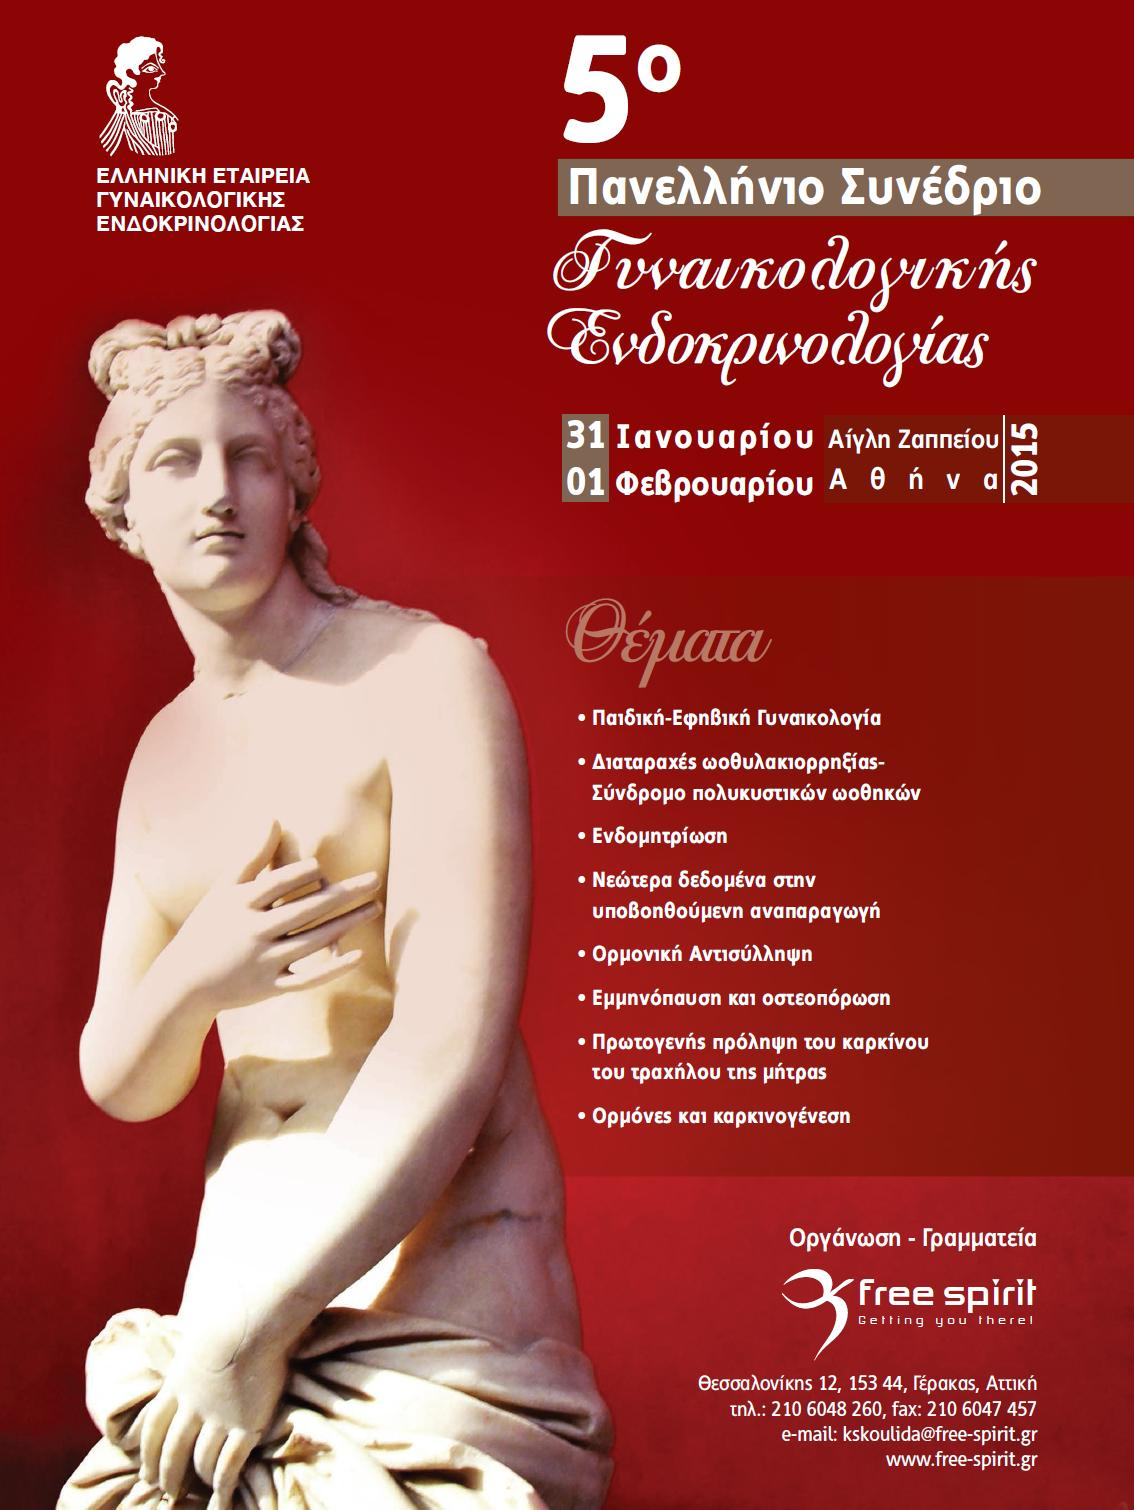 5th Panhellenic Congress of Gynaecological Endocrinology